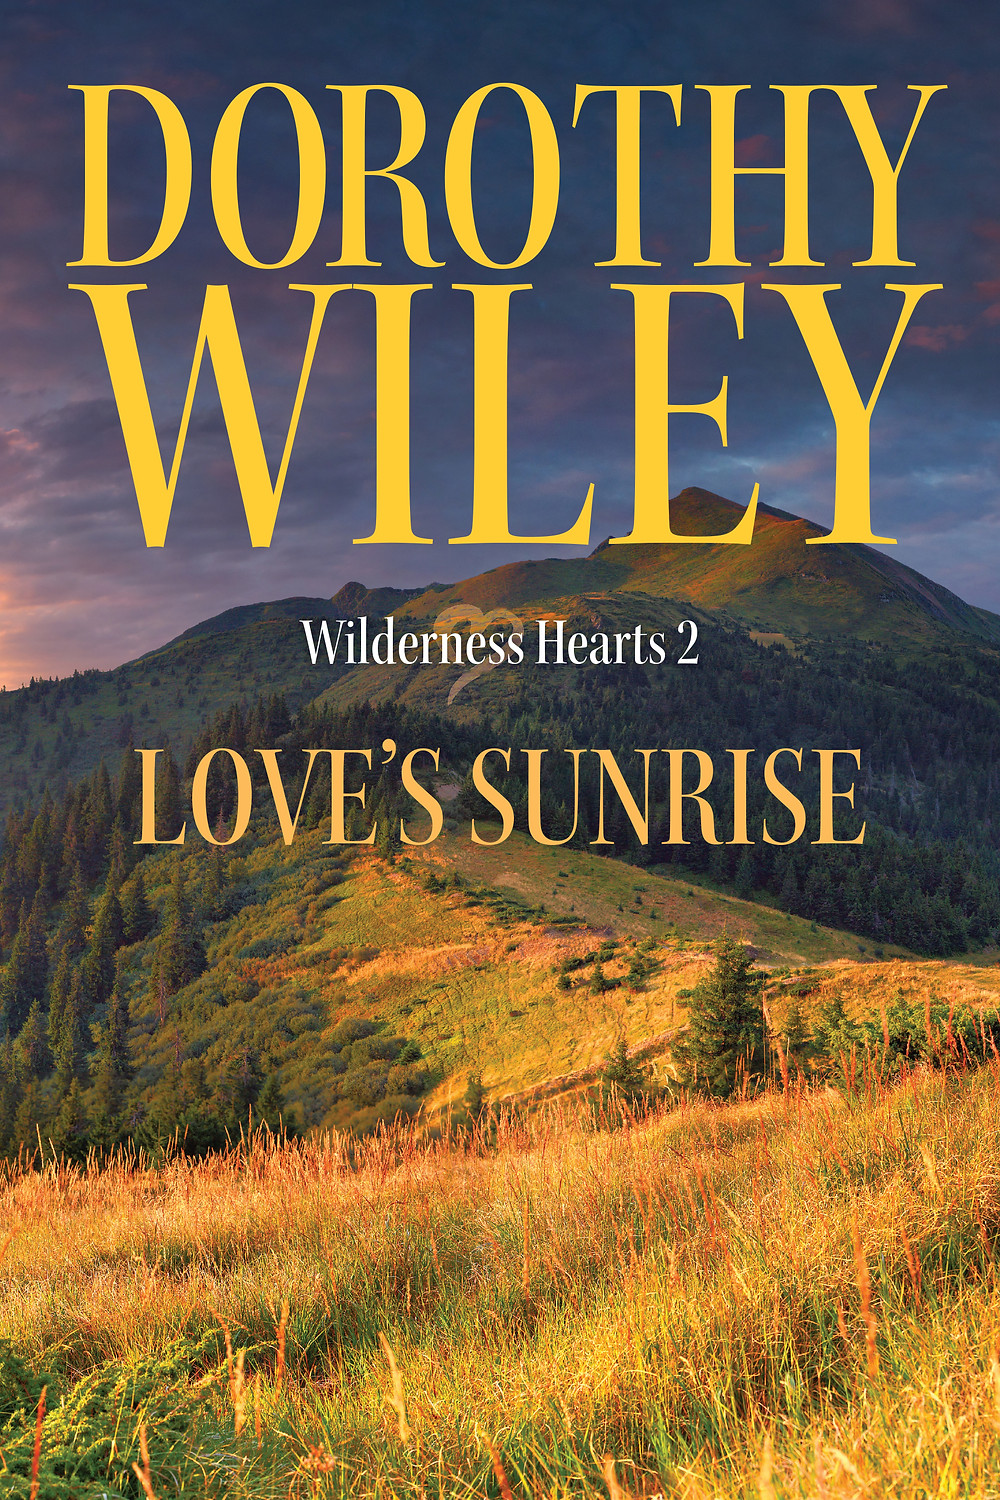 LOVE'S SUNRISE by Dorothy Wiley